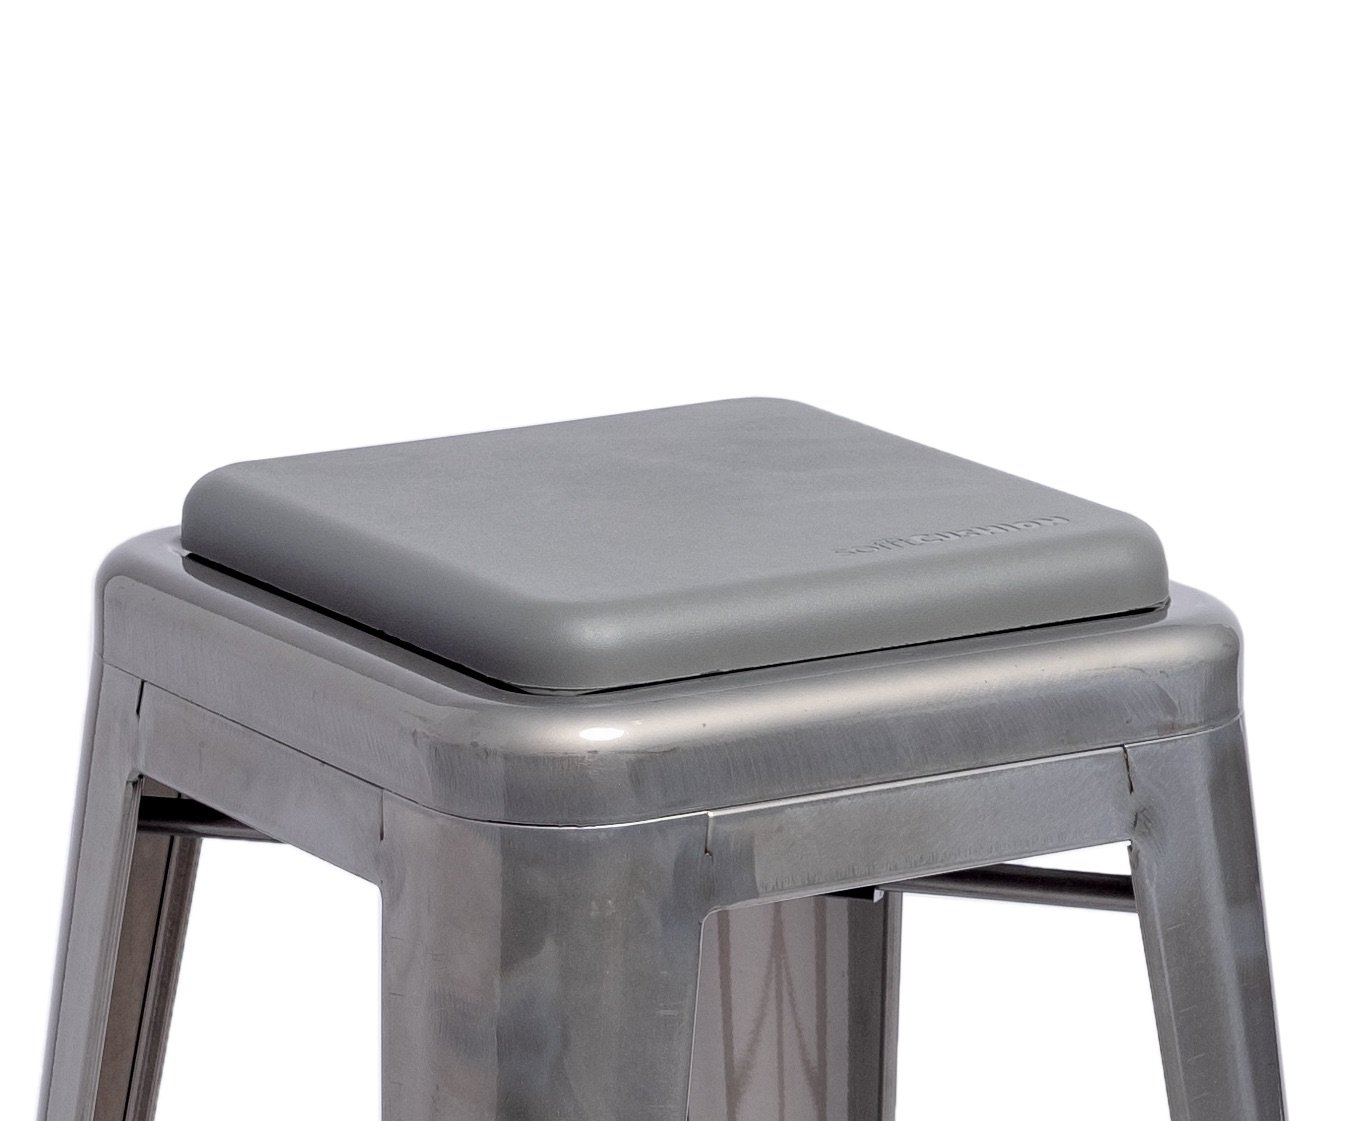 Remarkable Sofft Cushion Square Seat Cushion For Metal Bar Stools Or Chairs Cushion Only Gray Machost Co Dining Chair Design Ideas Machostcouk